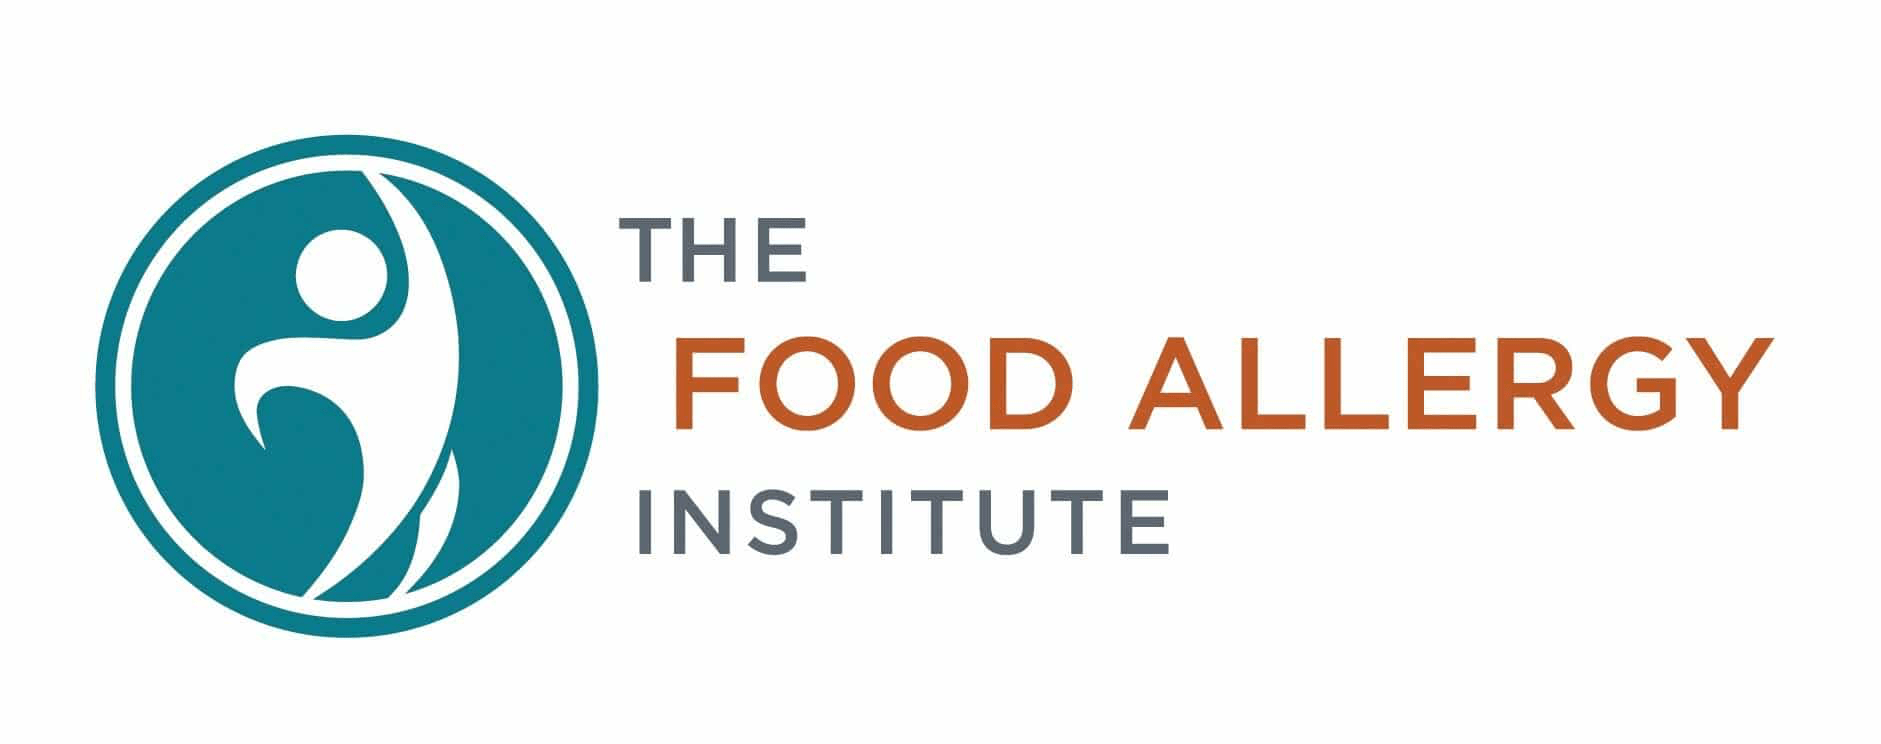 The Food Allergy Institute